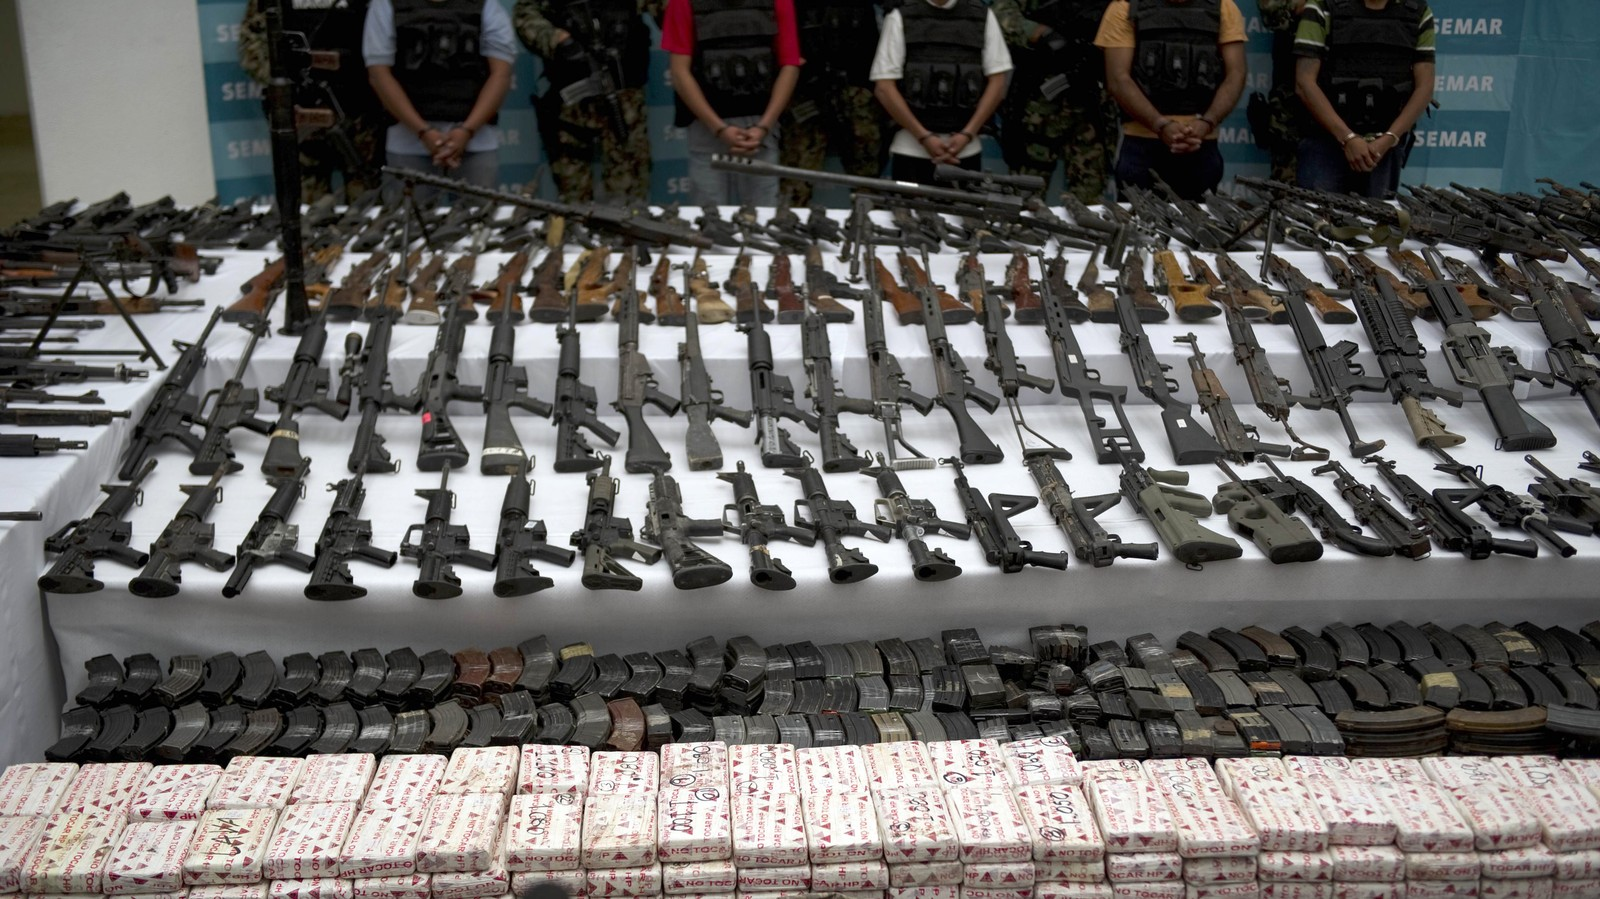 European Gun Makers Are Quietly Supplying the Mexican Drug Wars